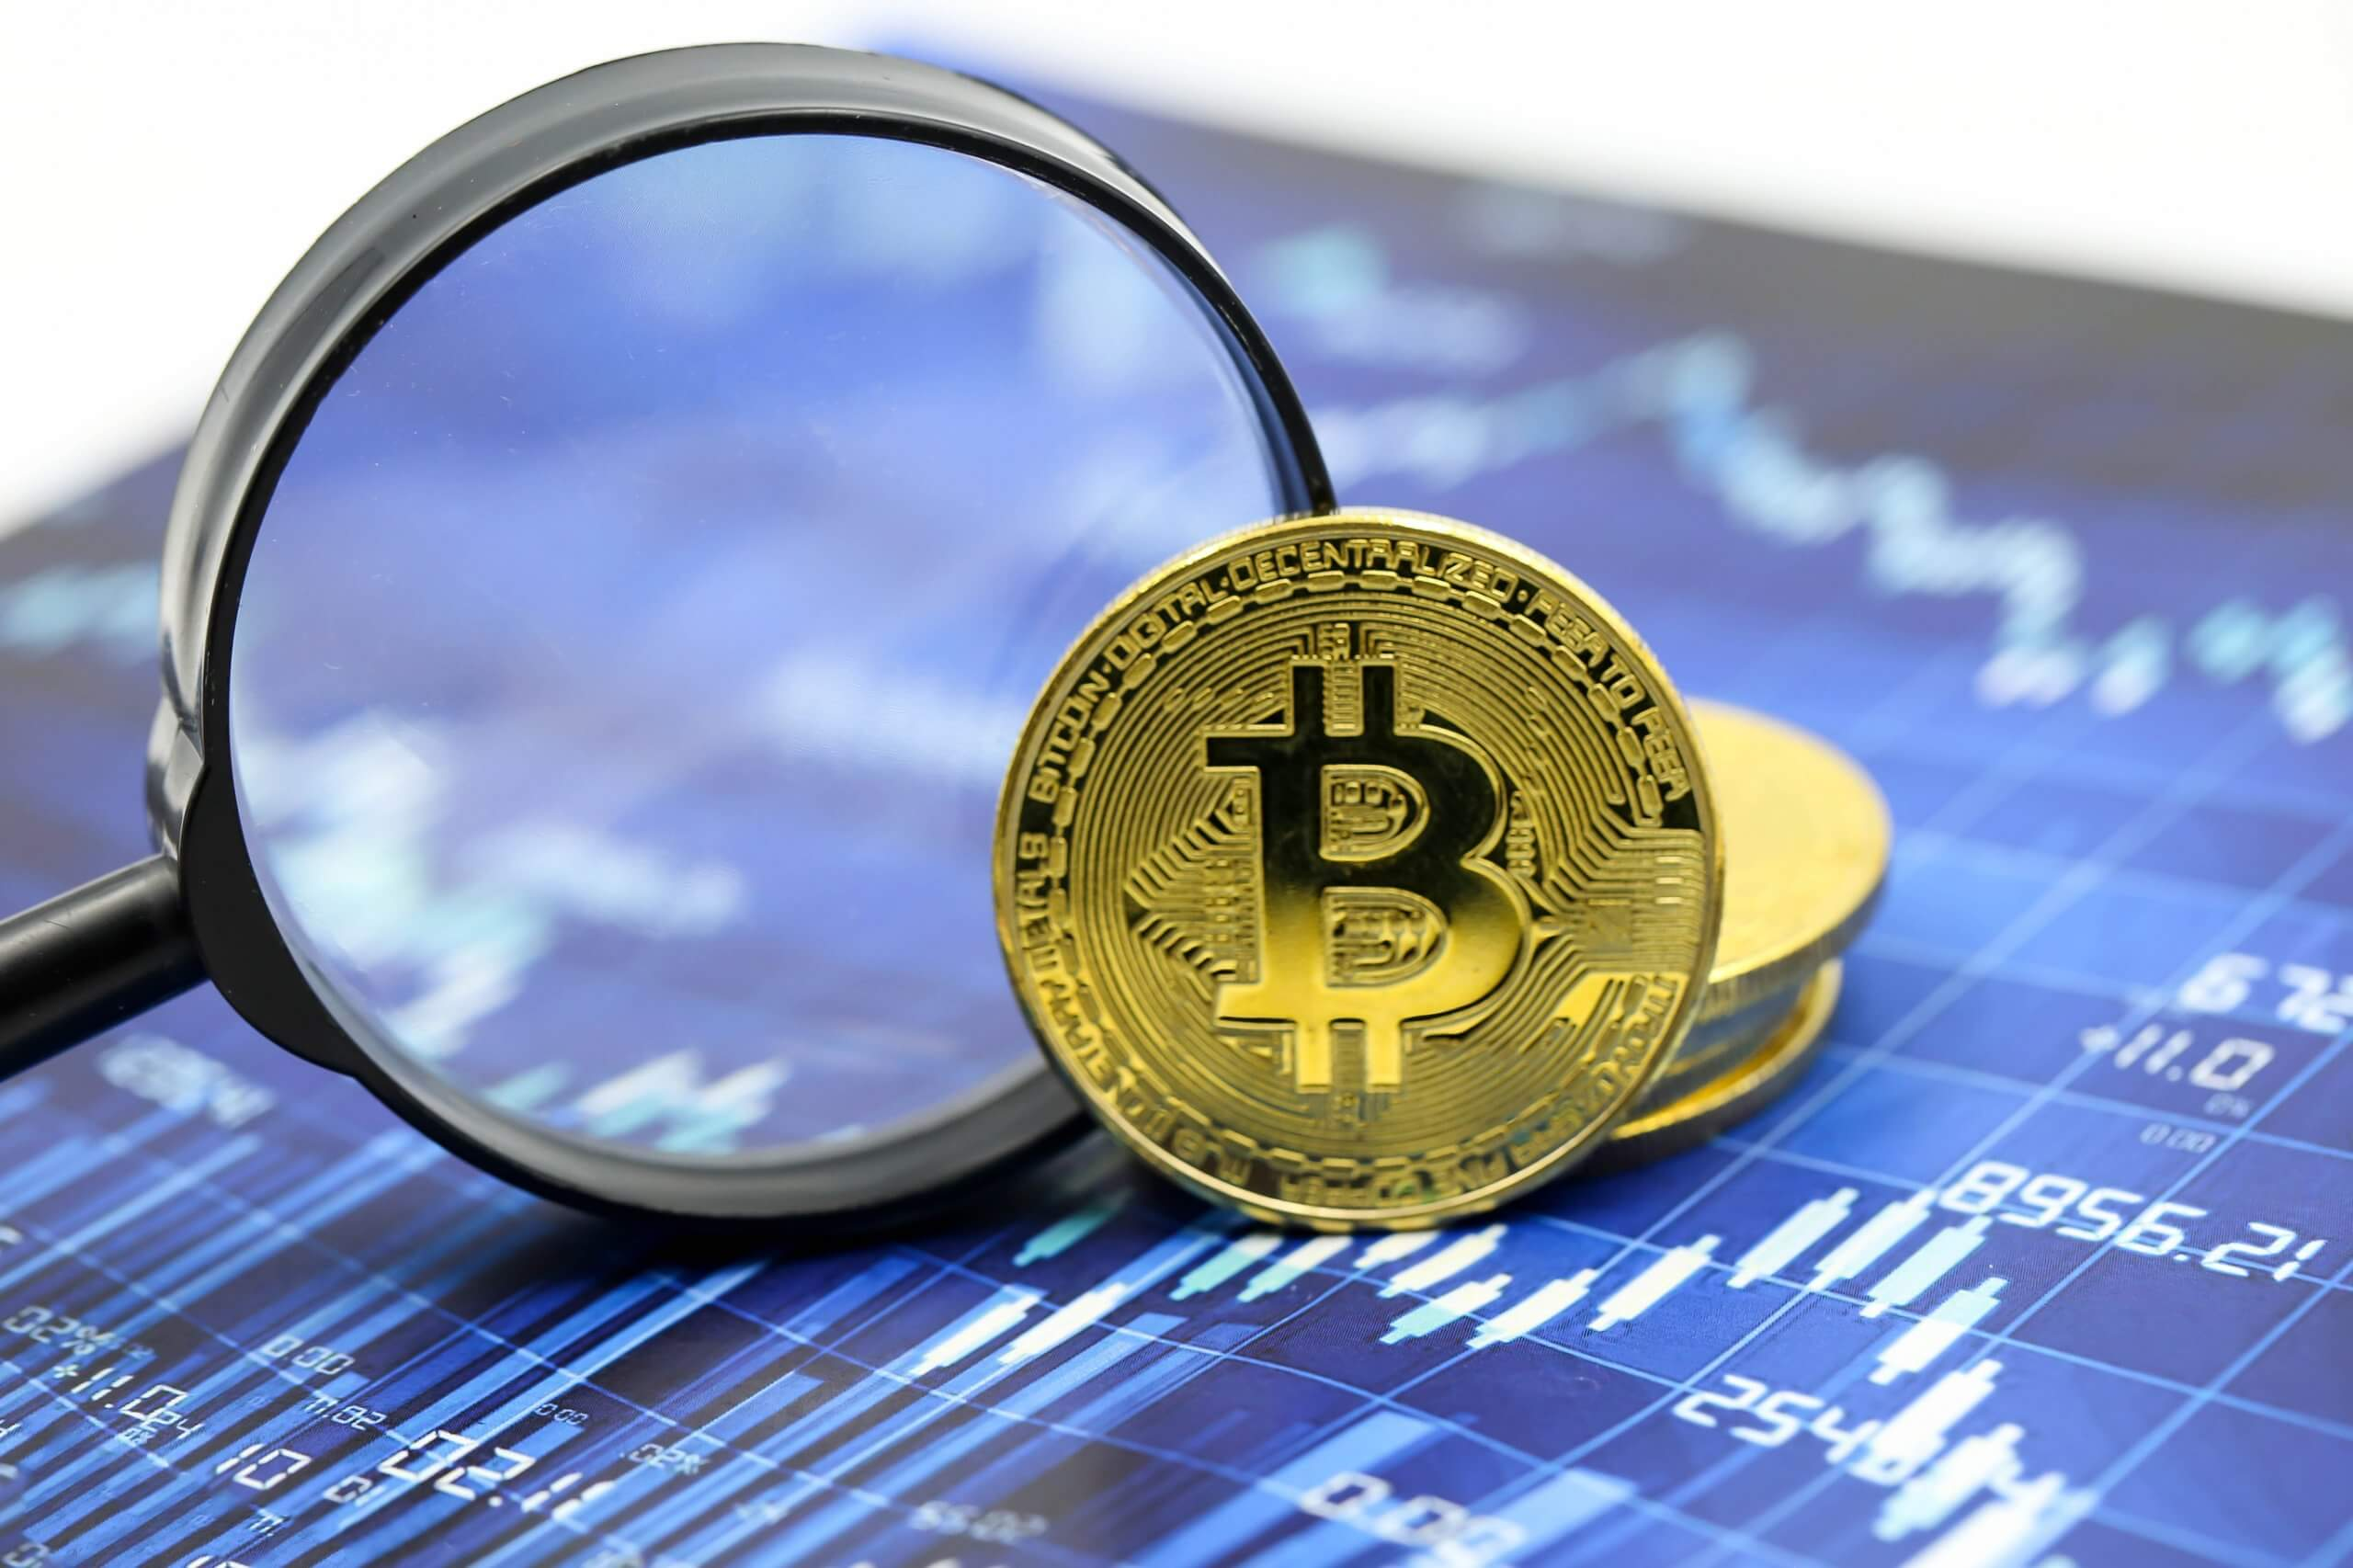 Bitcoin price prediction for the coming week